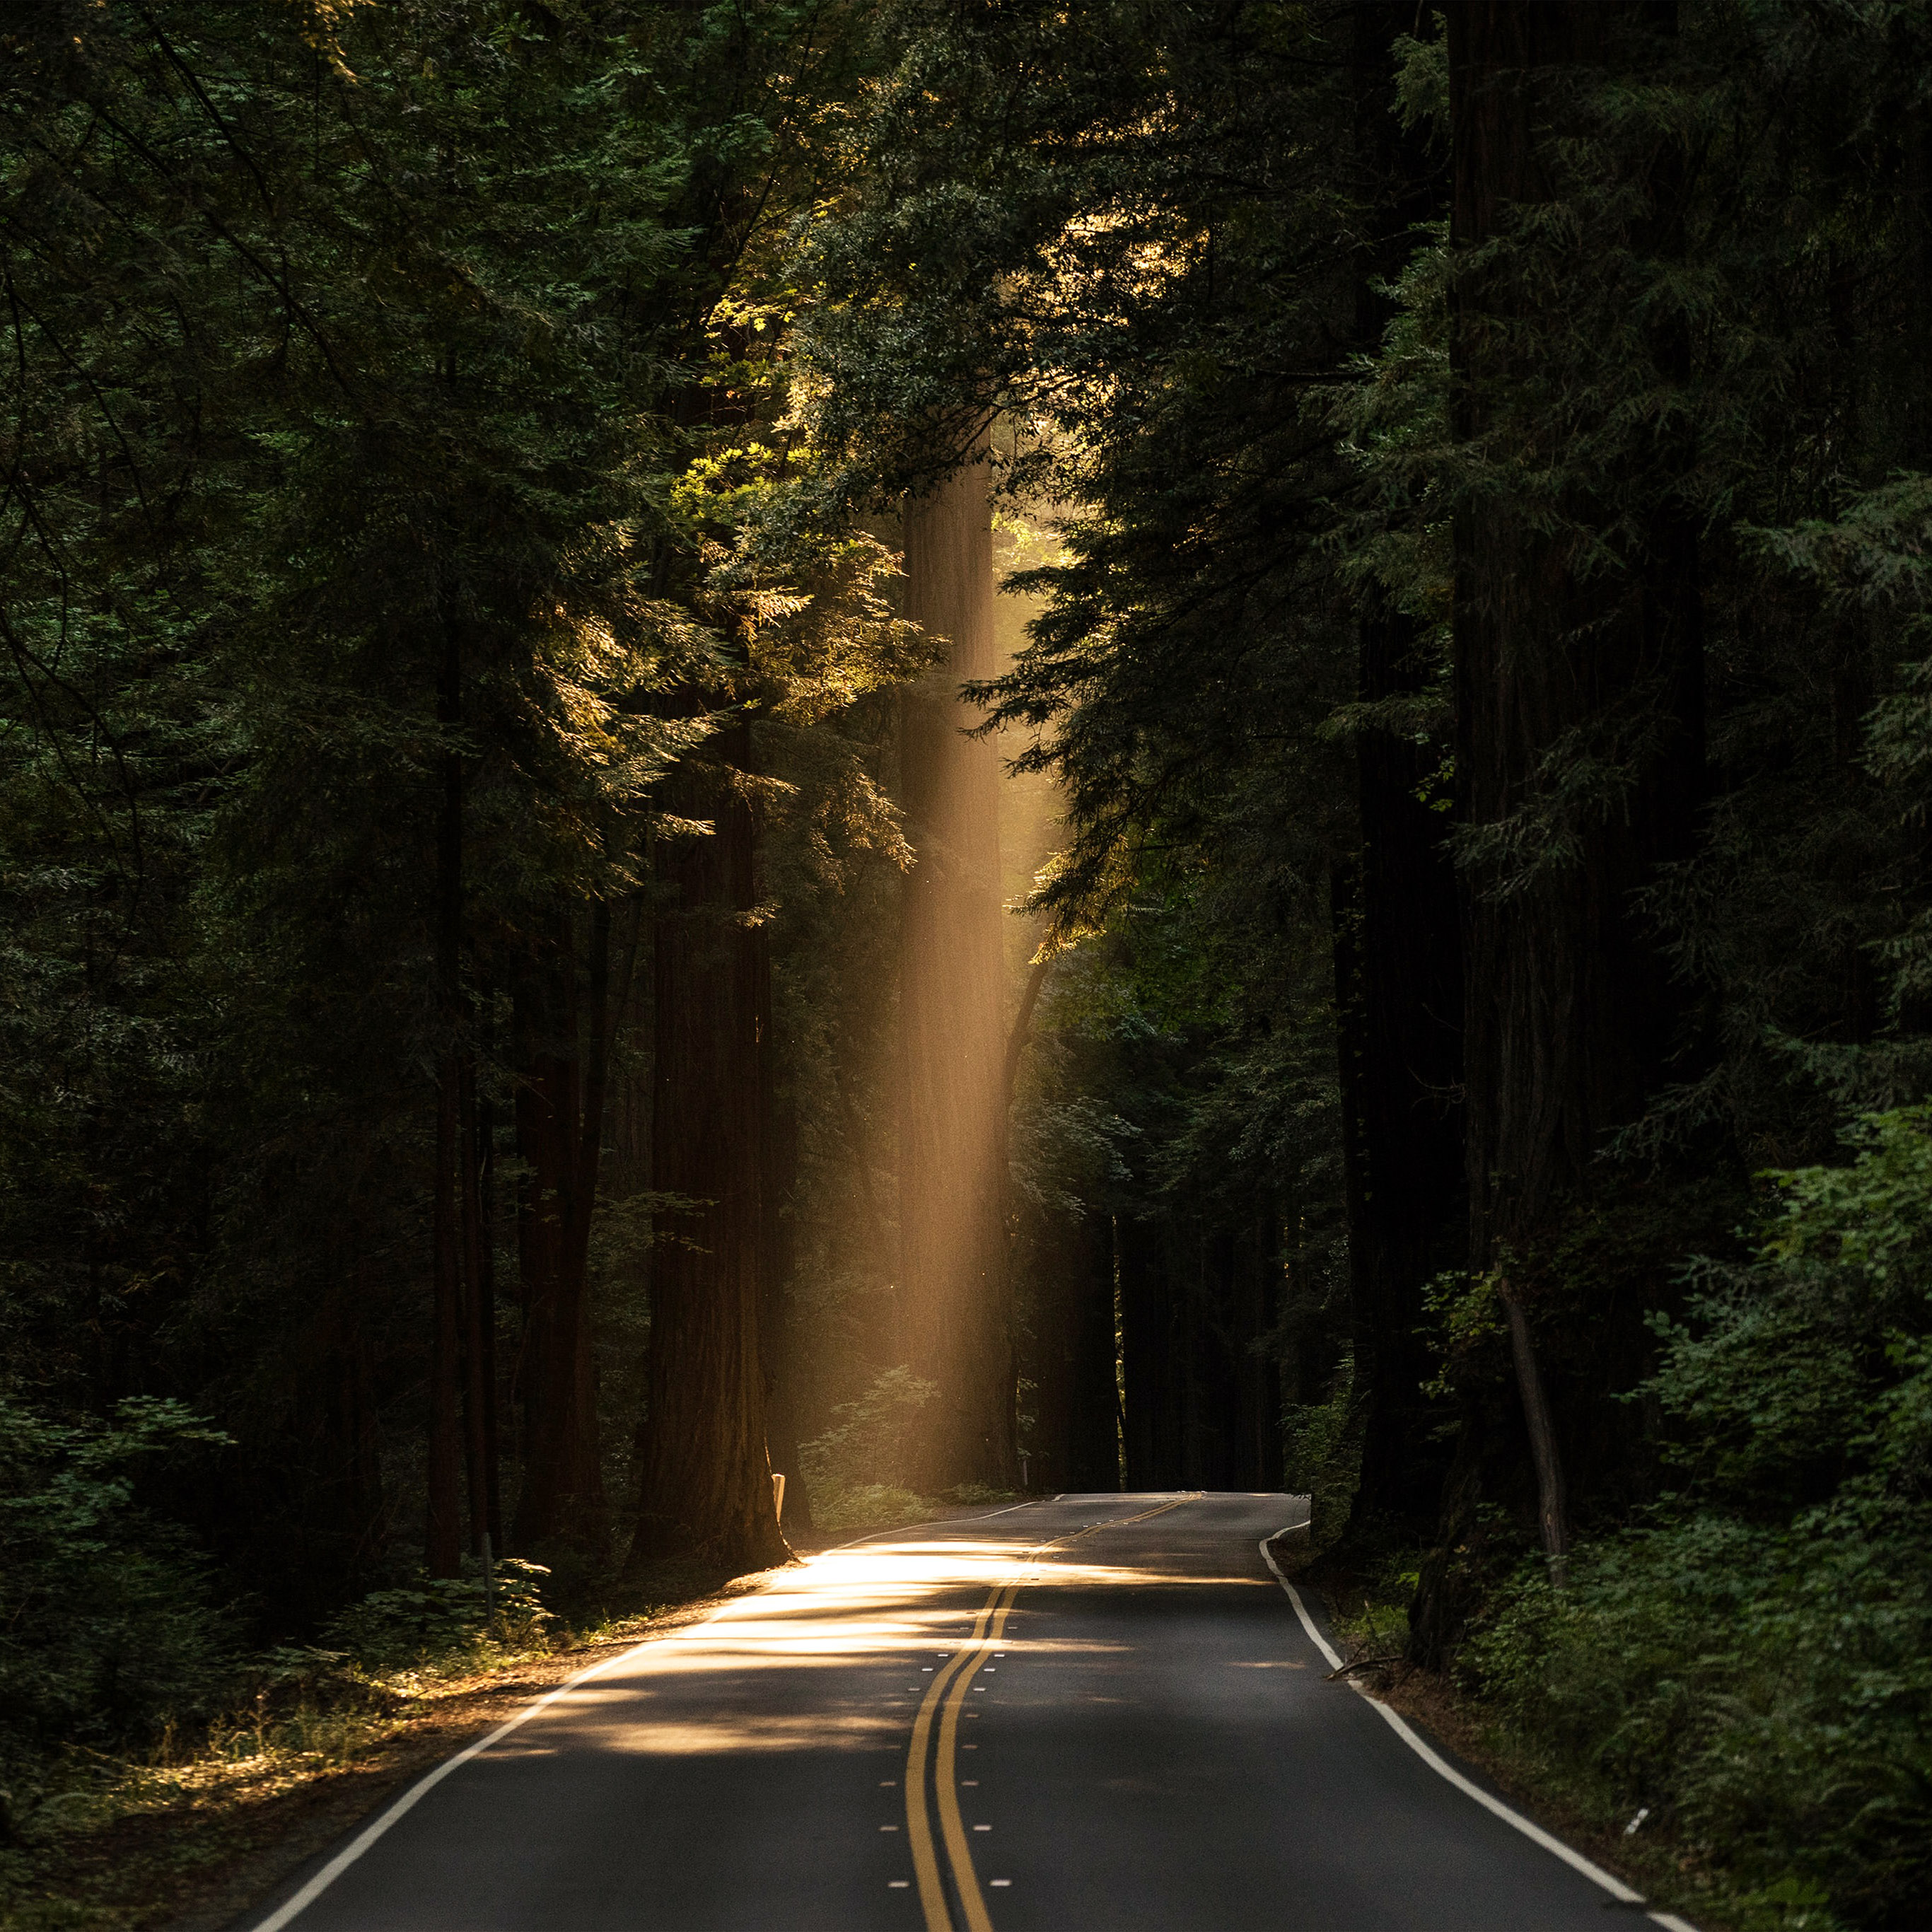 Nh17 Light Road Wood Forest Way Nature Green Wallpaper